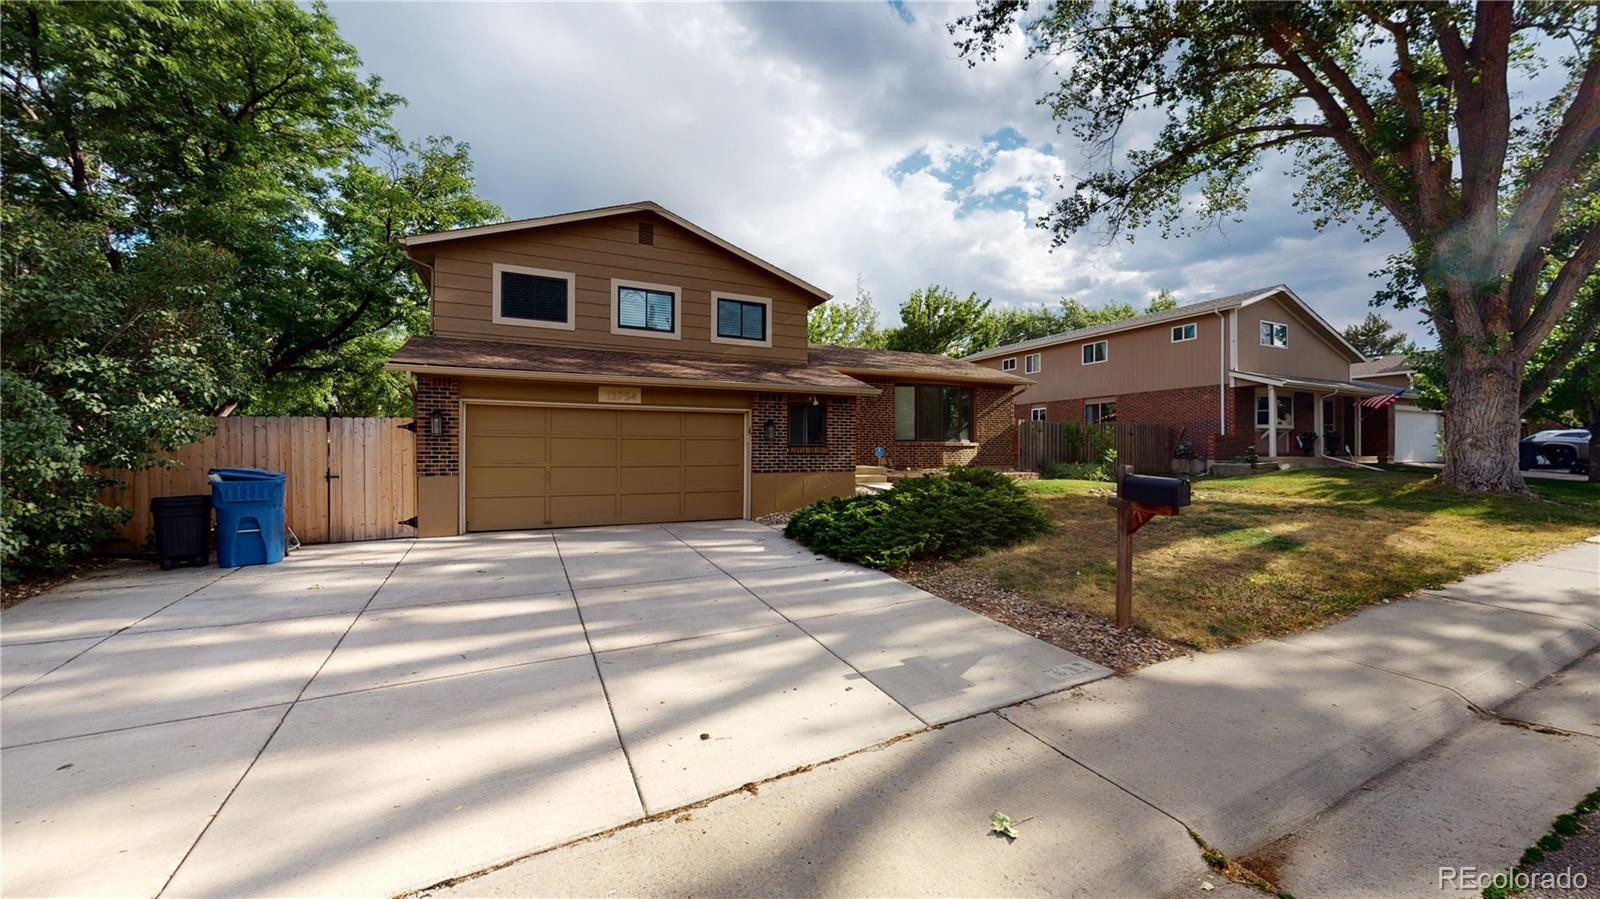 13754 W 69th Avenue, Arvada, CO 80004 - #: 4034239